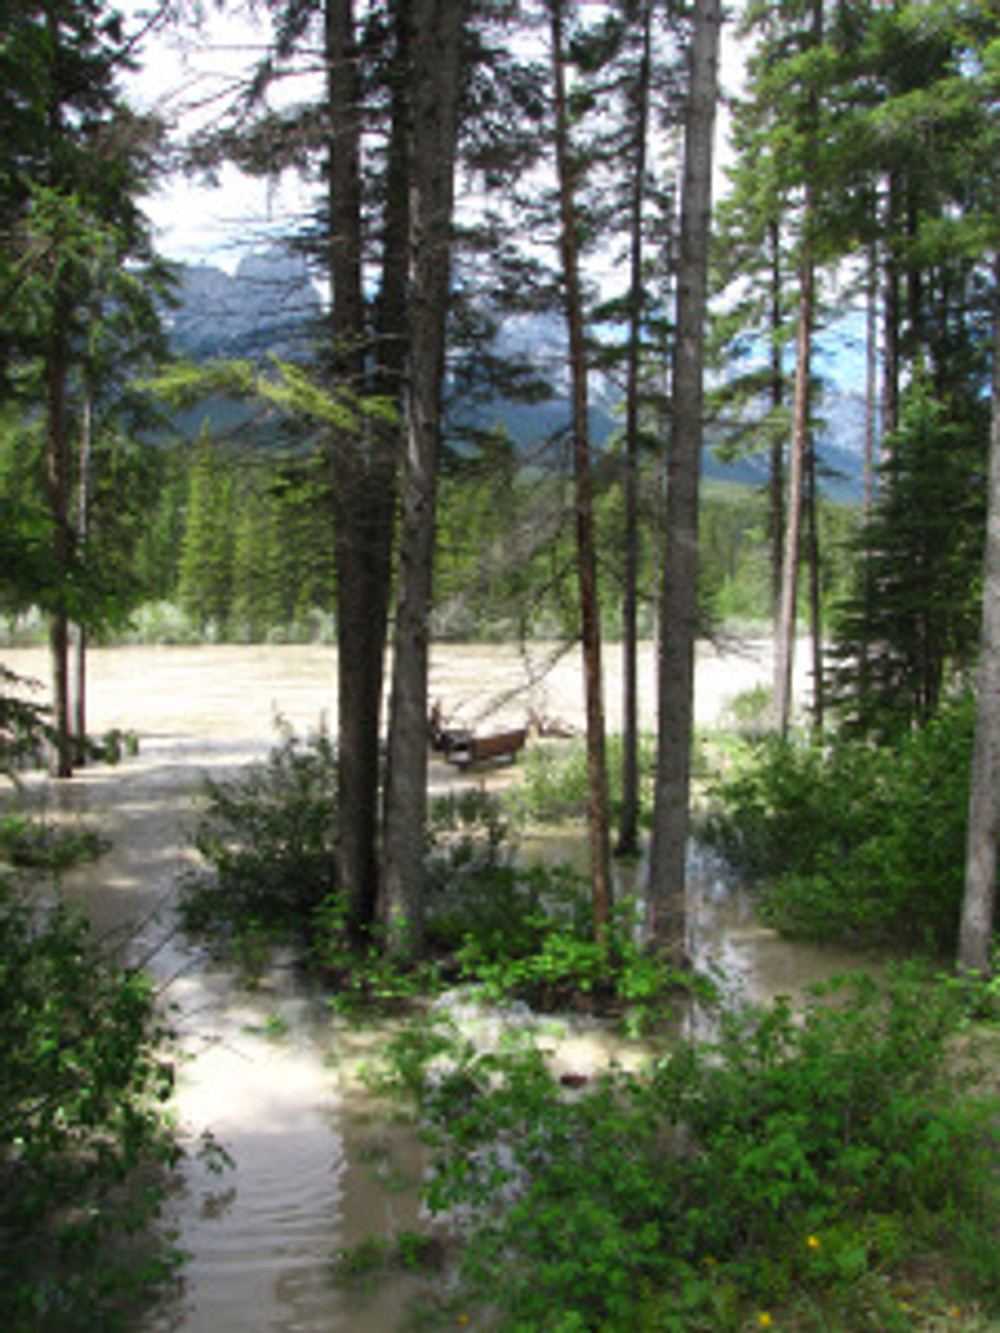 Flood waters of the Bow River help to redistribute sediment and nutrients away from the river bank.